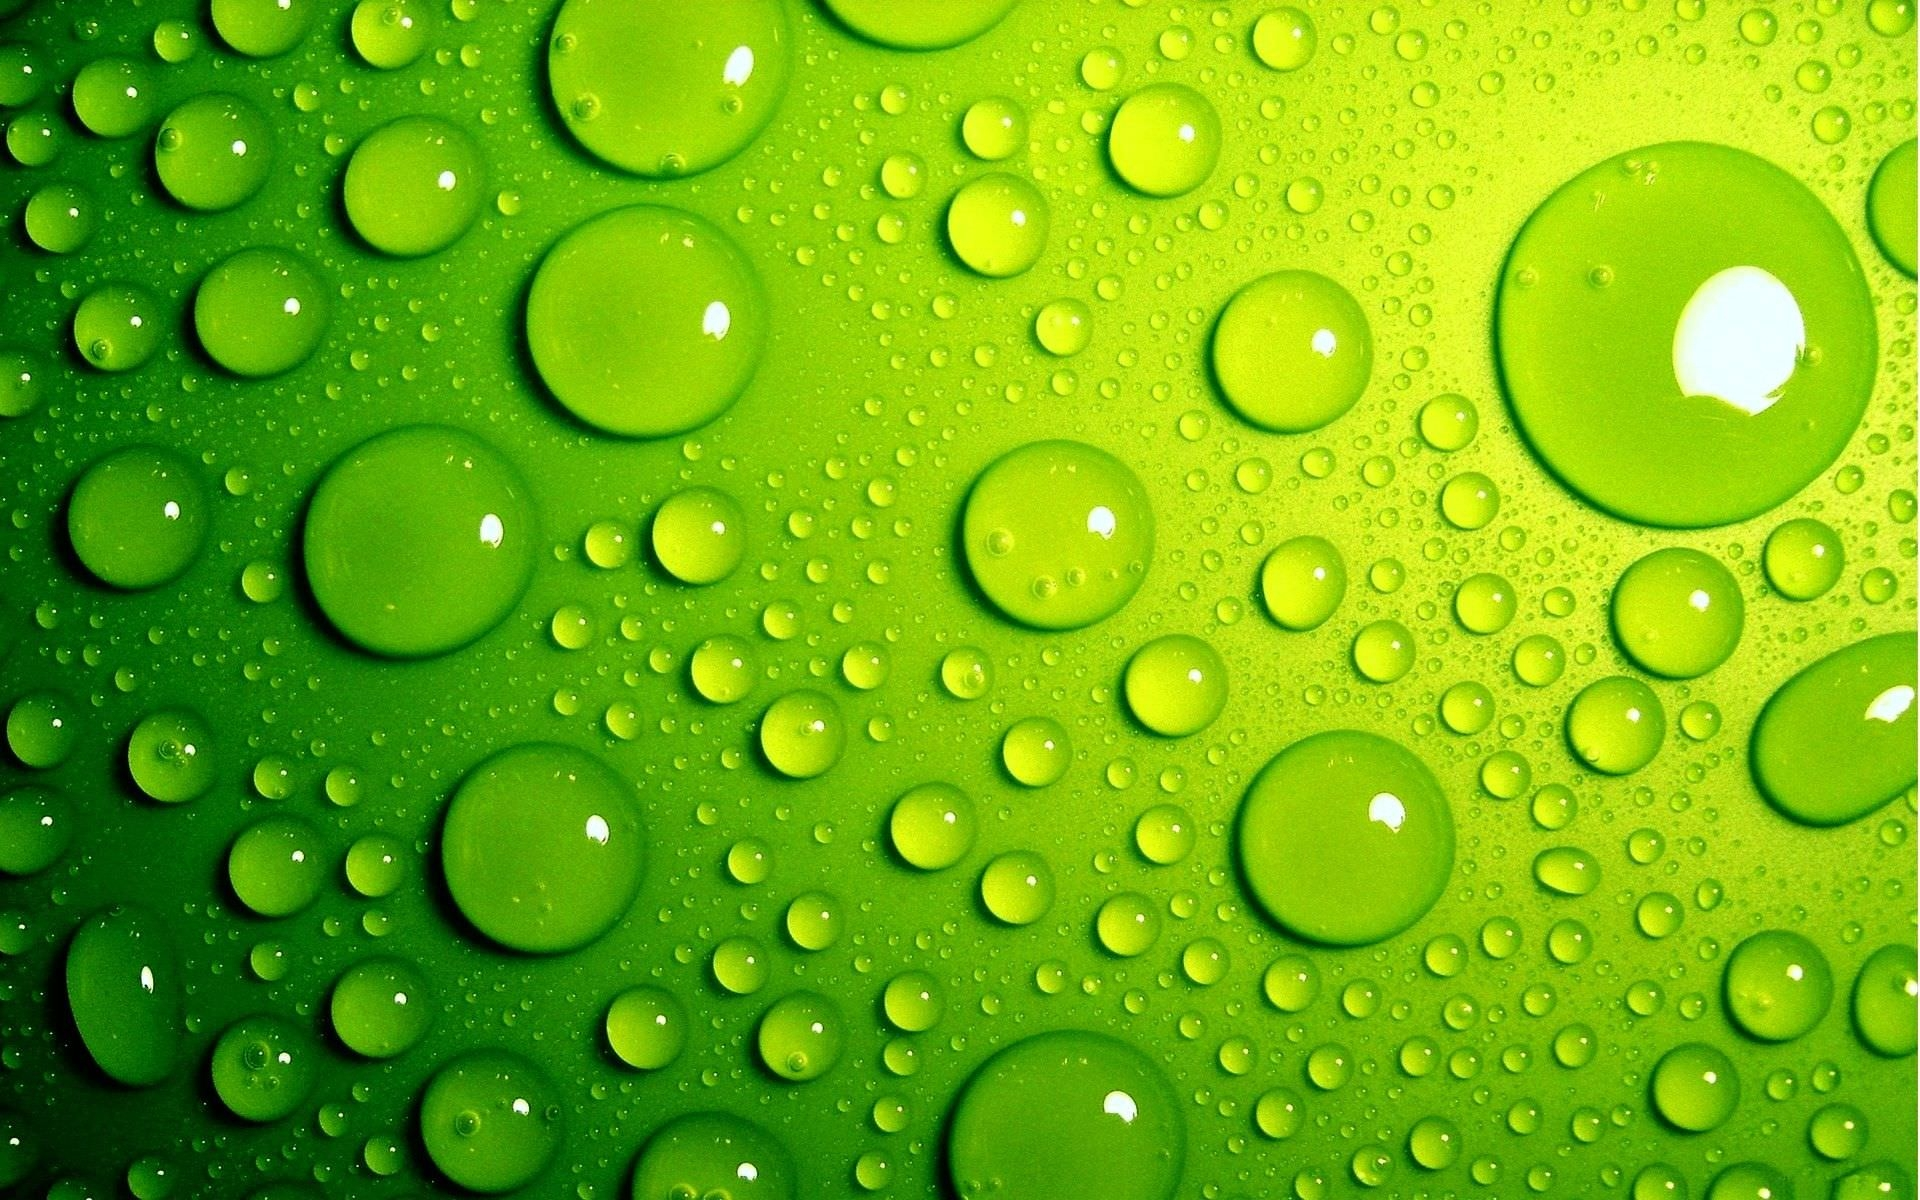 Green Bubbles Background